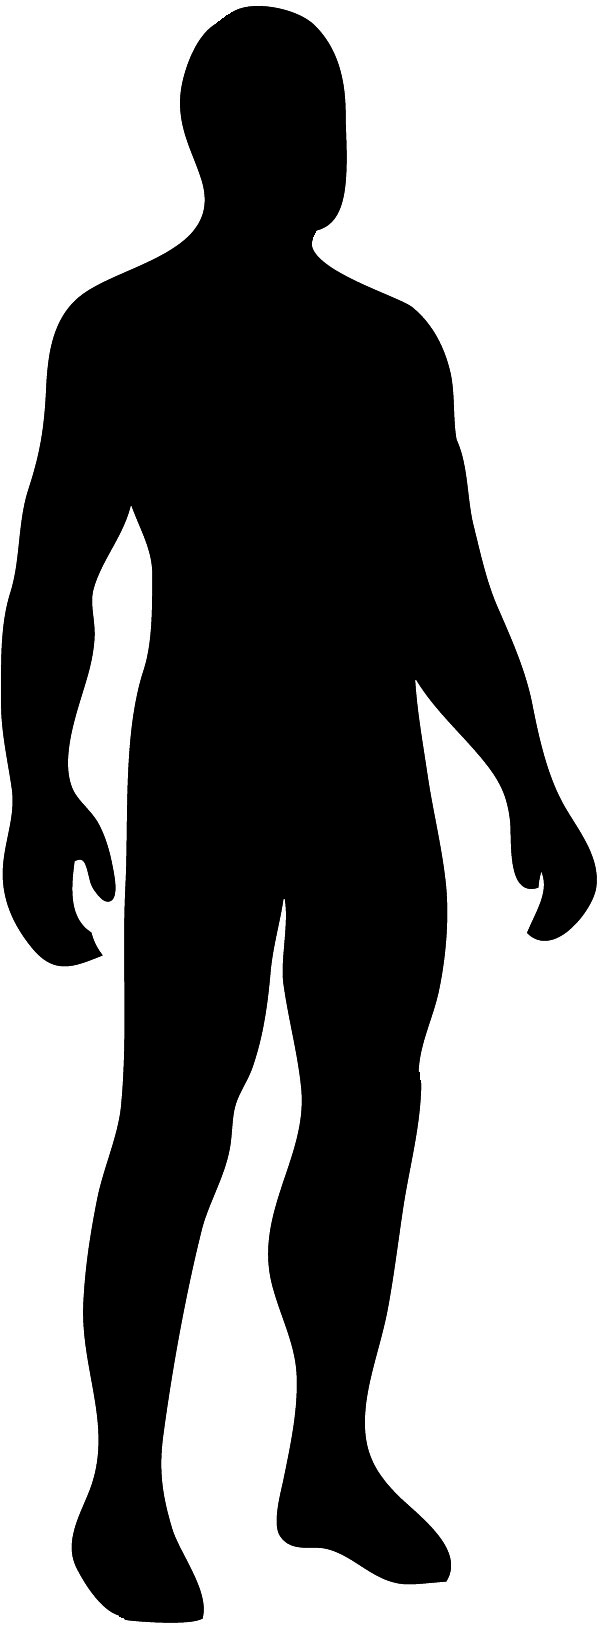 Human Body Outline Png - ClipArt Best